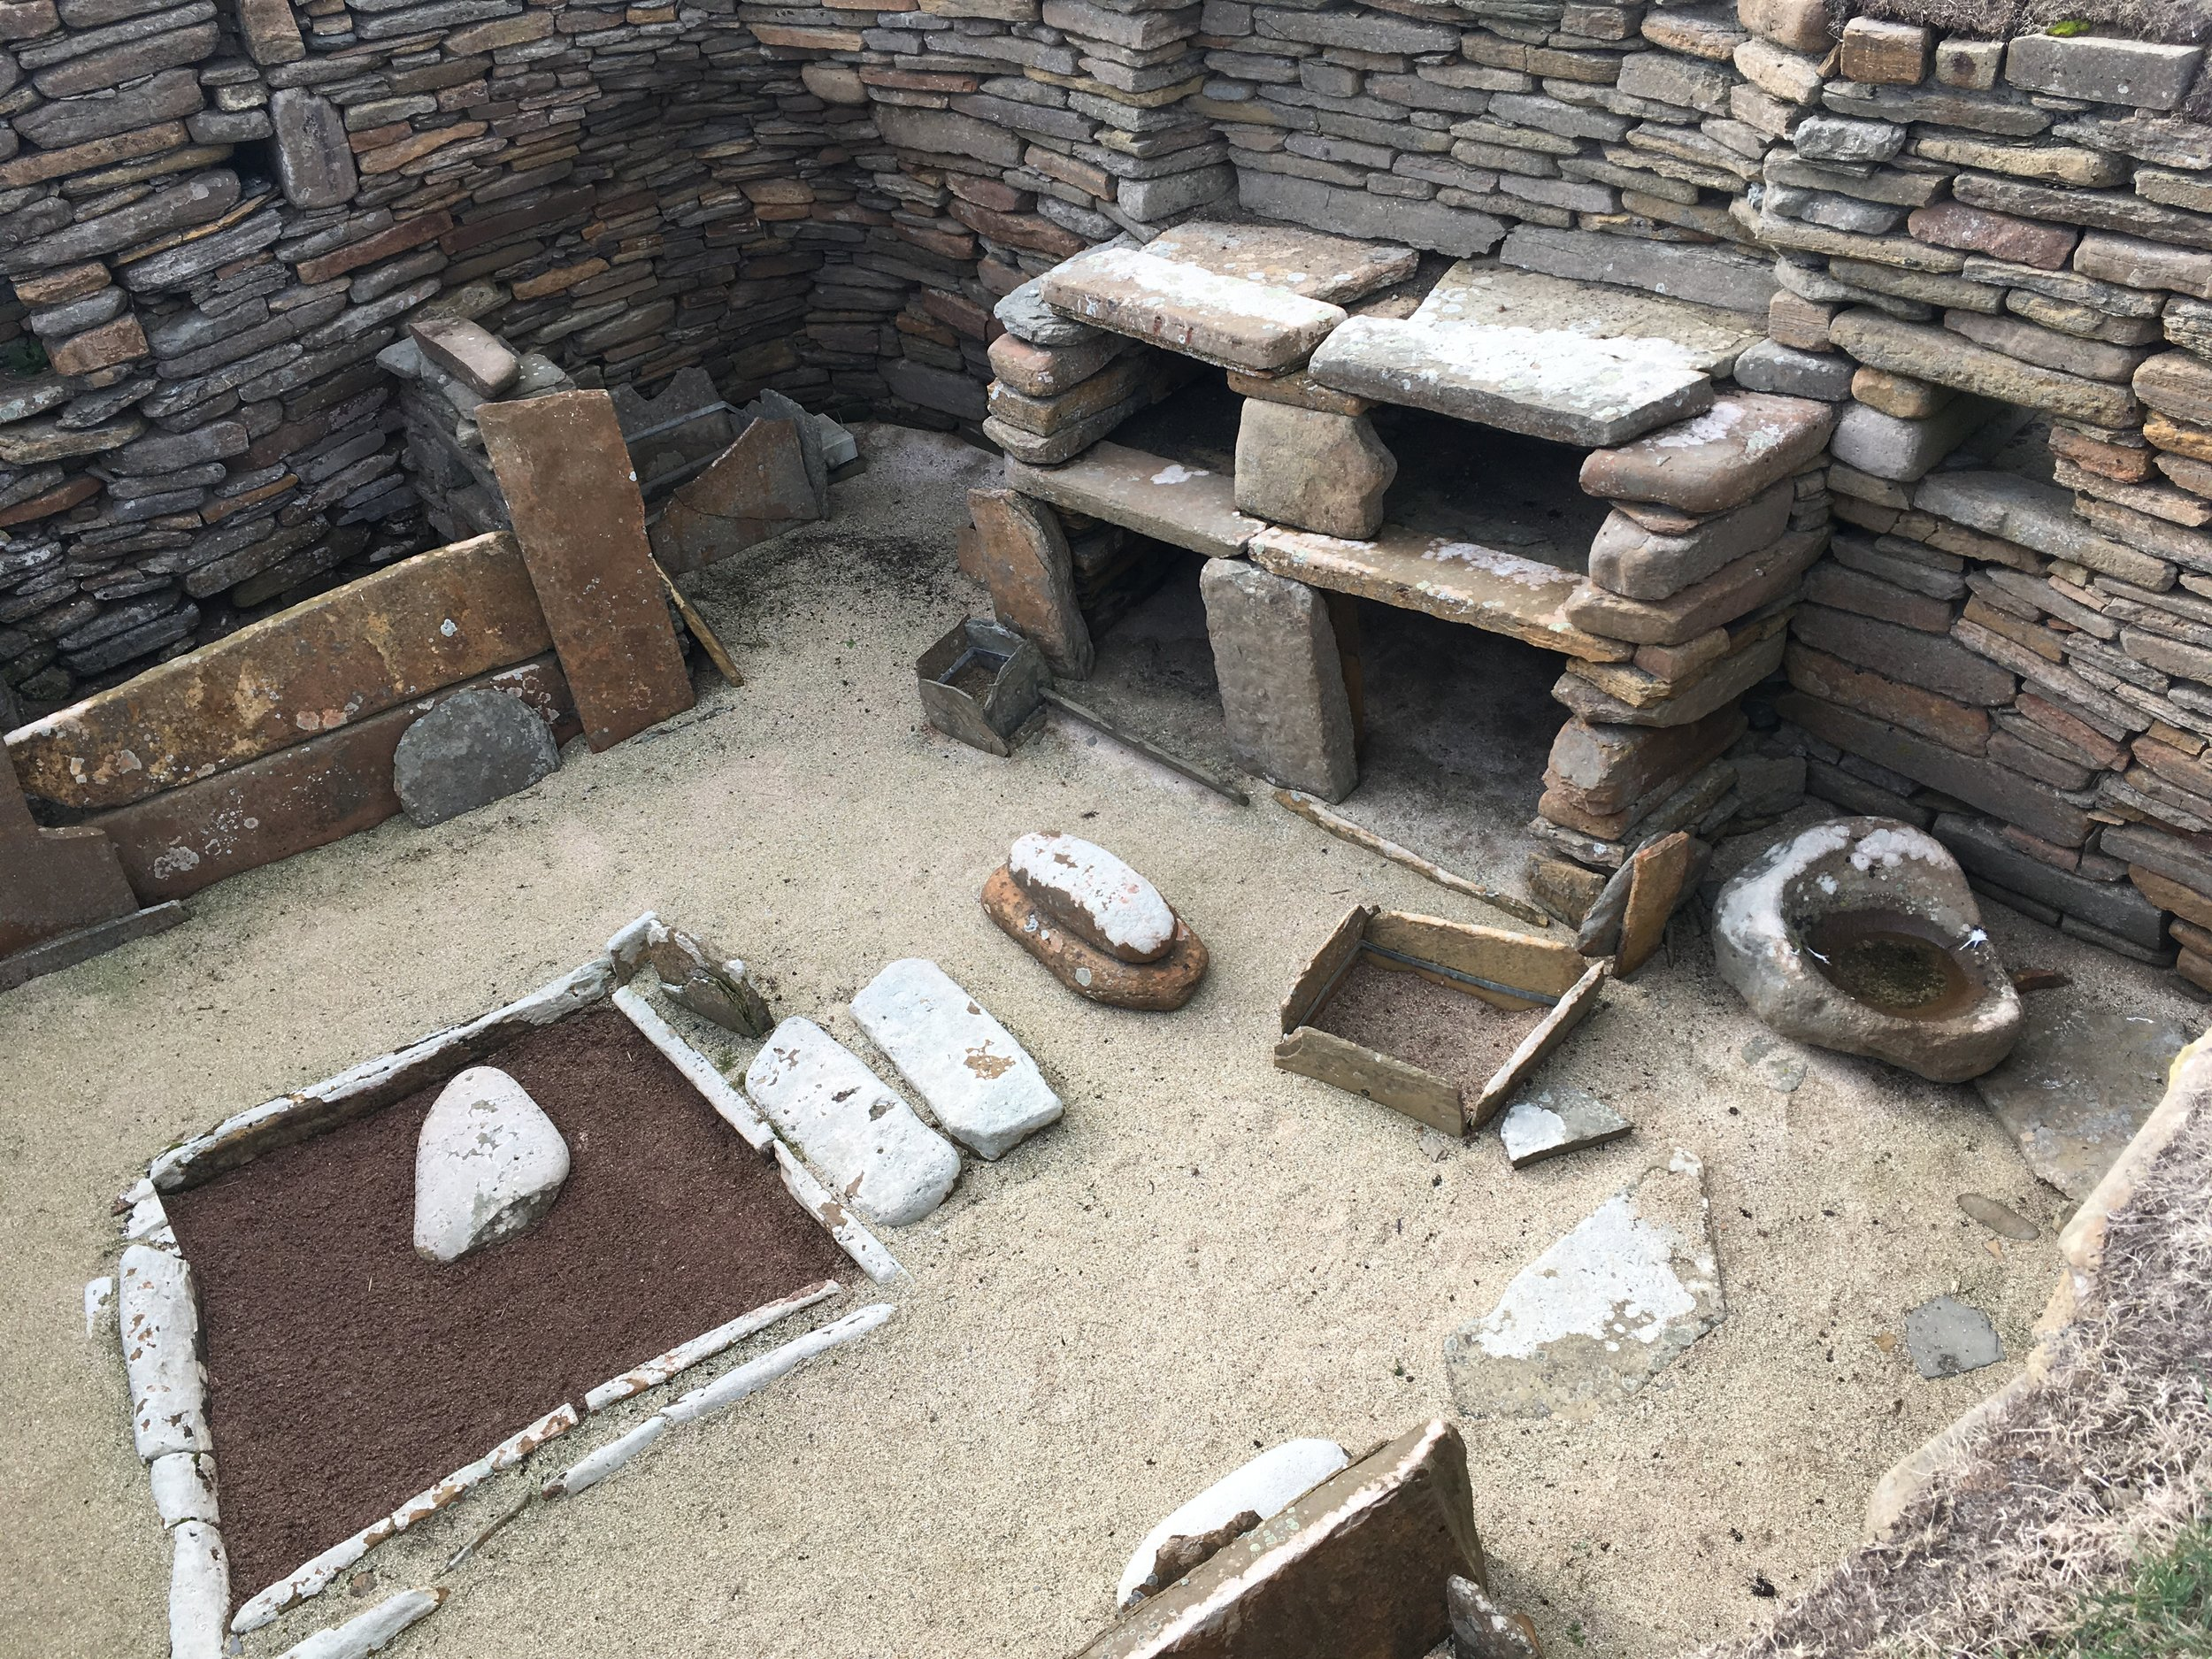 Neolithic Interior | Box beds, mantlepieces and indoor pools for keeping fresh catch, an interior designed around human behaviour and necessity.